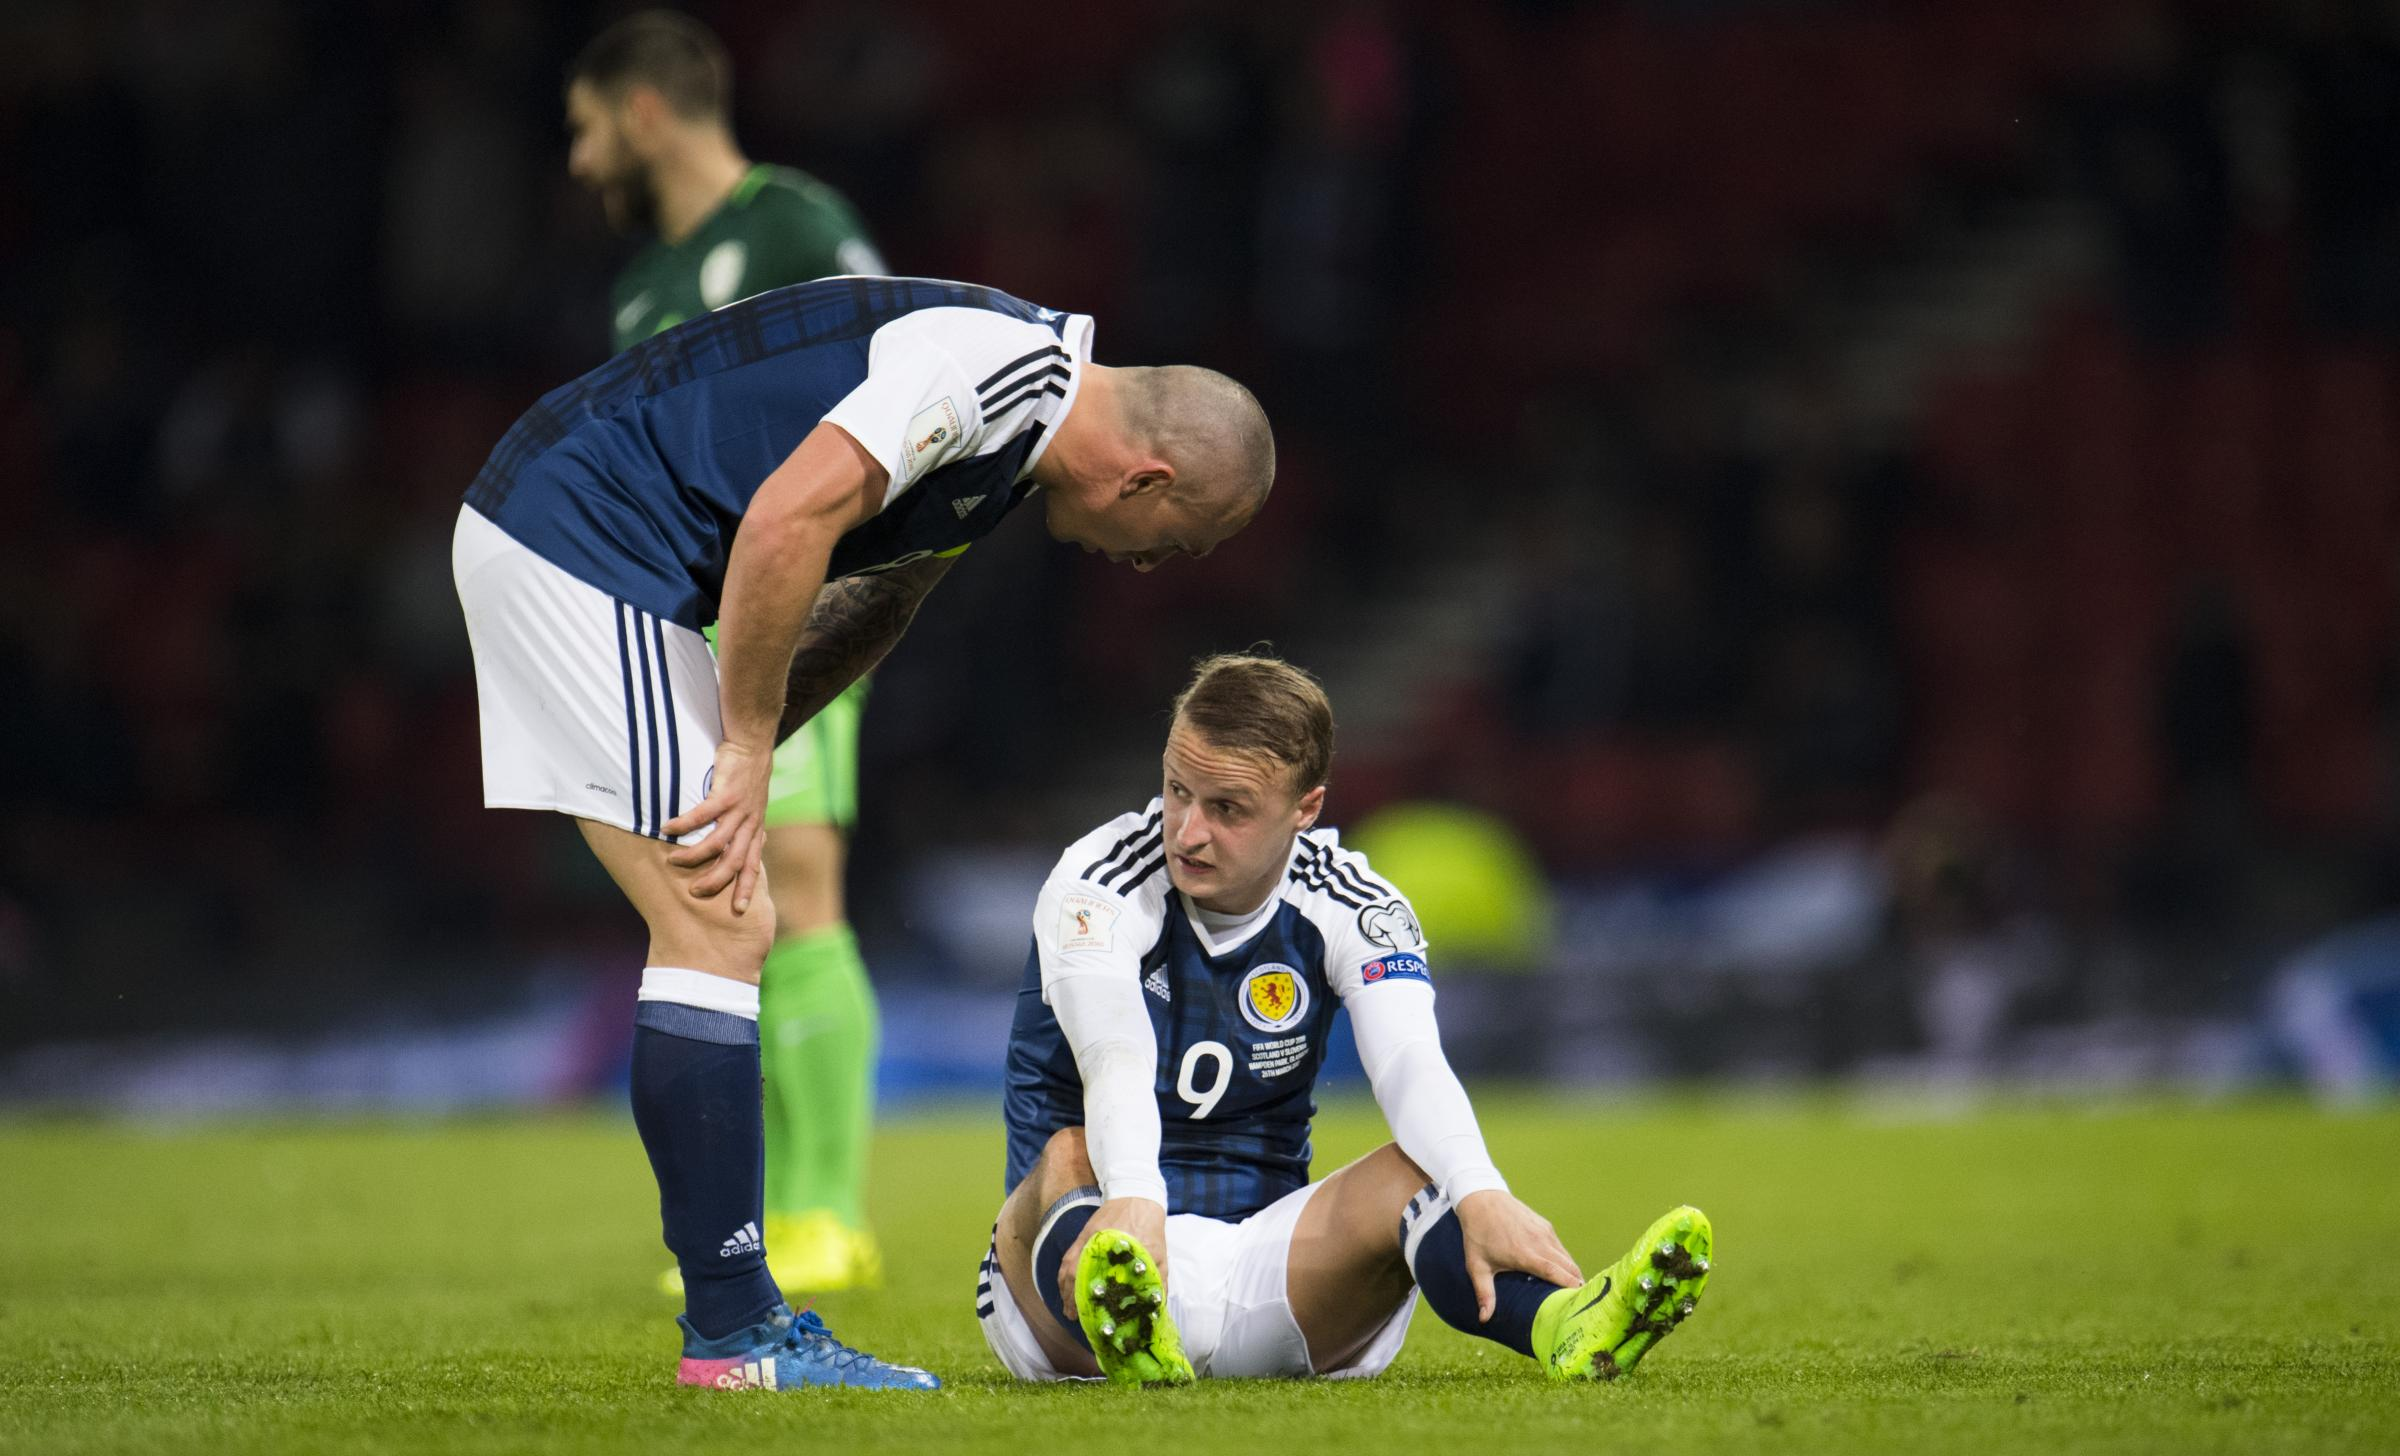 Gordon Strachan: Celtic striker Leigh Griffiths can recover from his Slovenia woe – and help Scotland gun down England